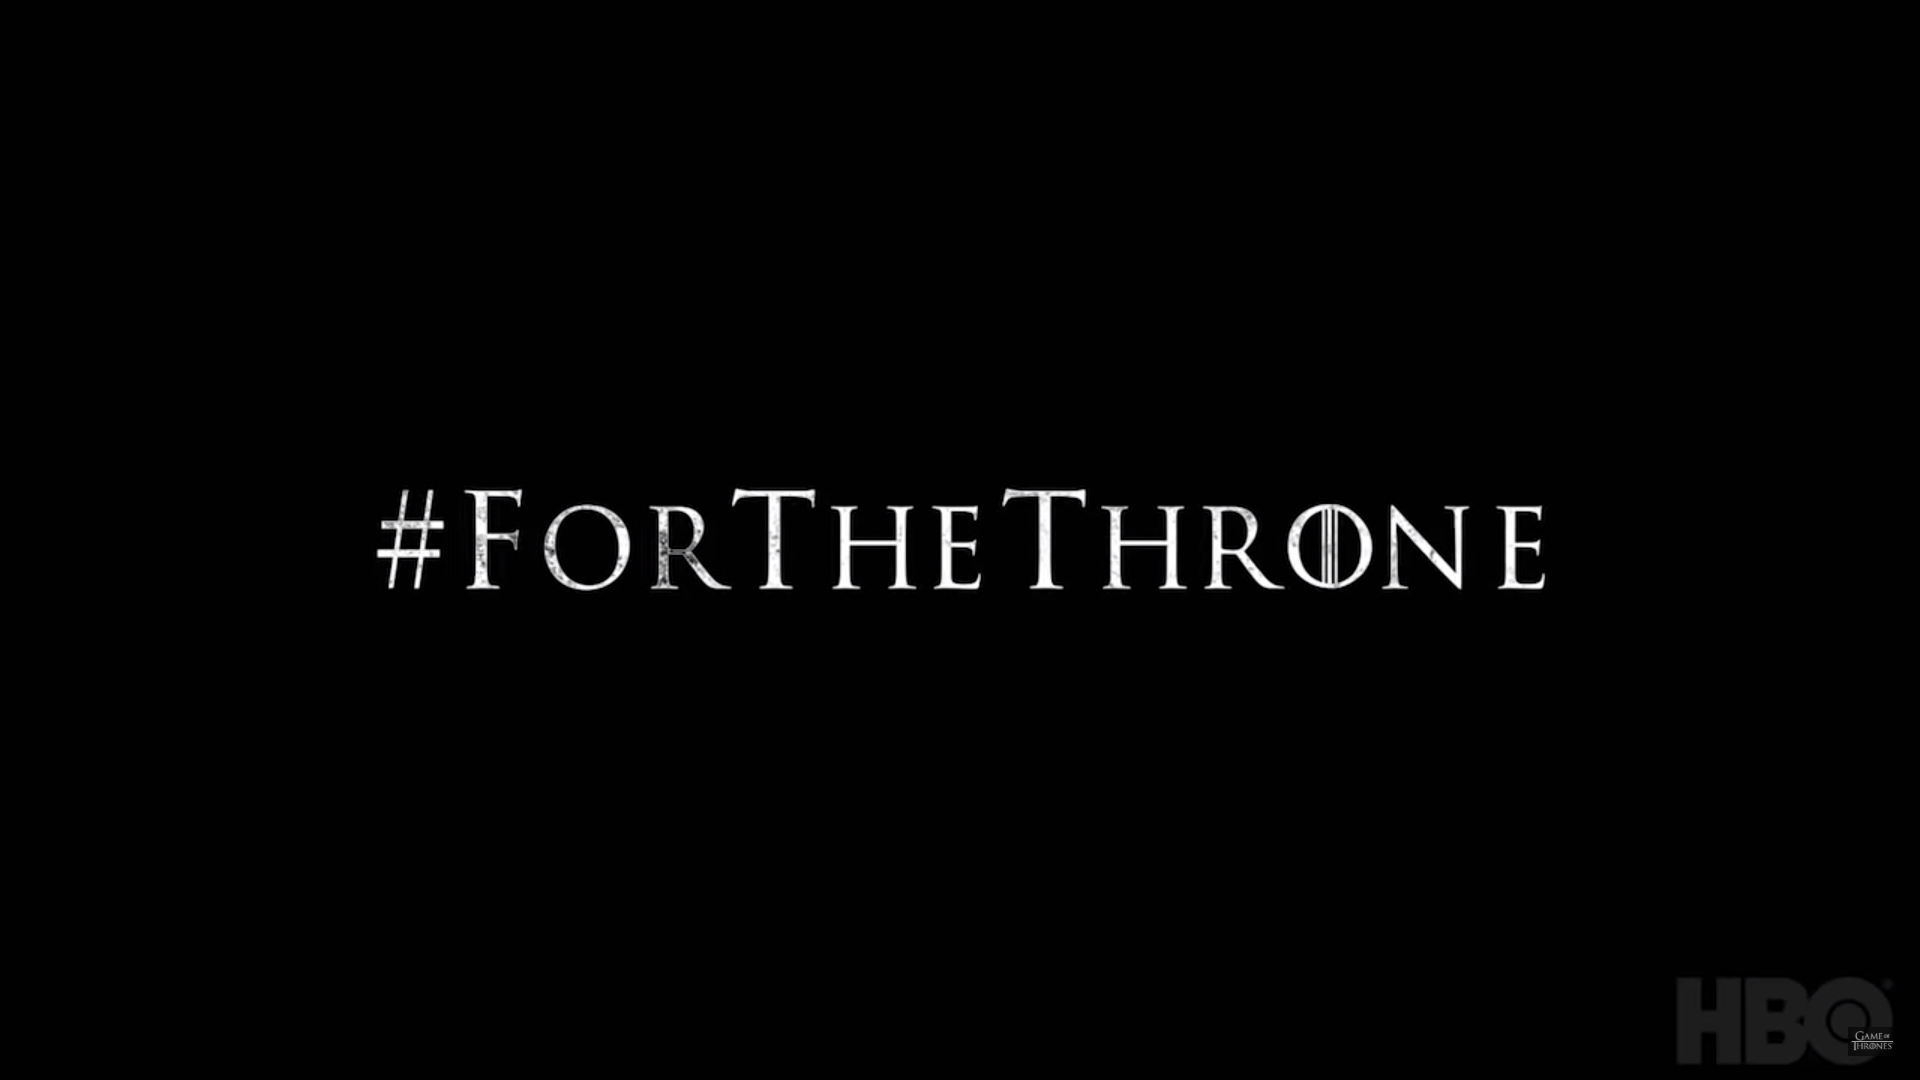 Game of Thrones Season 8 Release Date #ForTheThrone